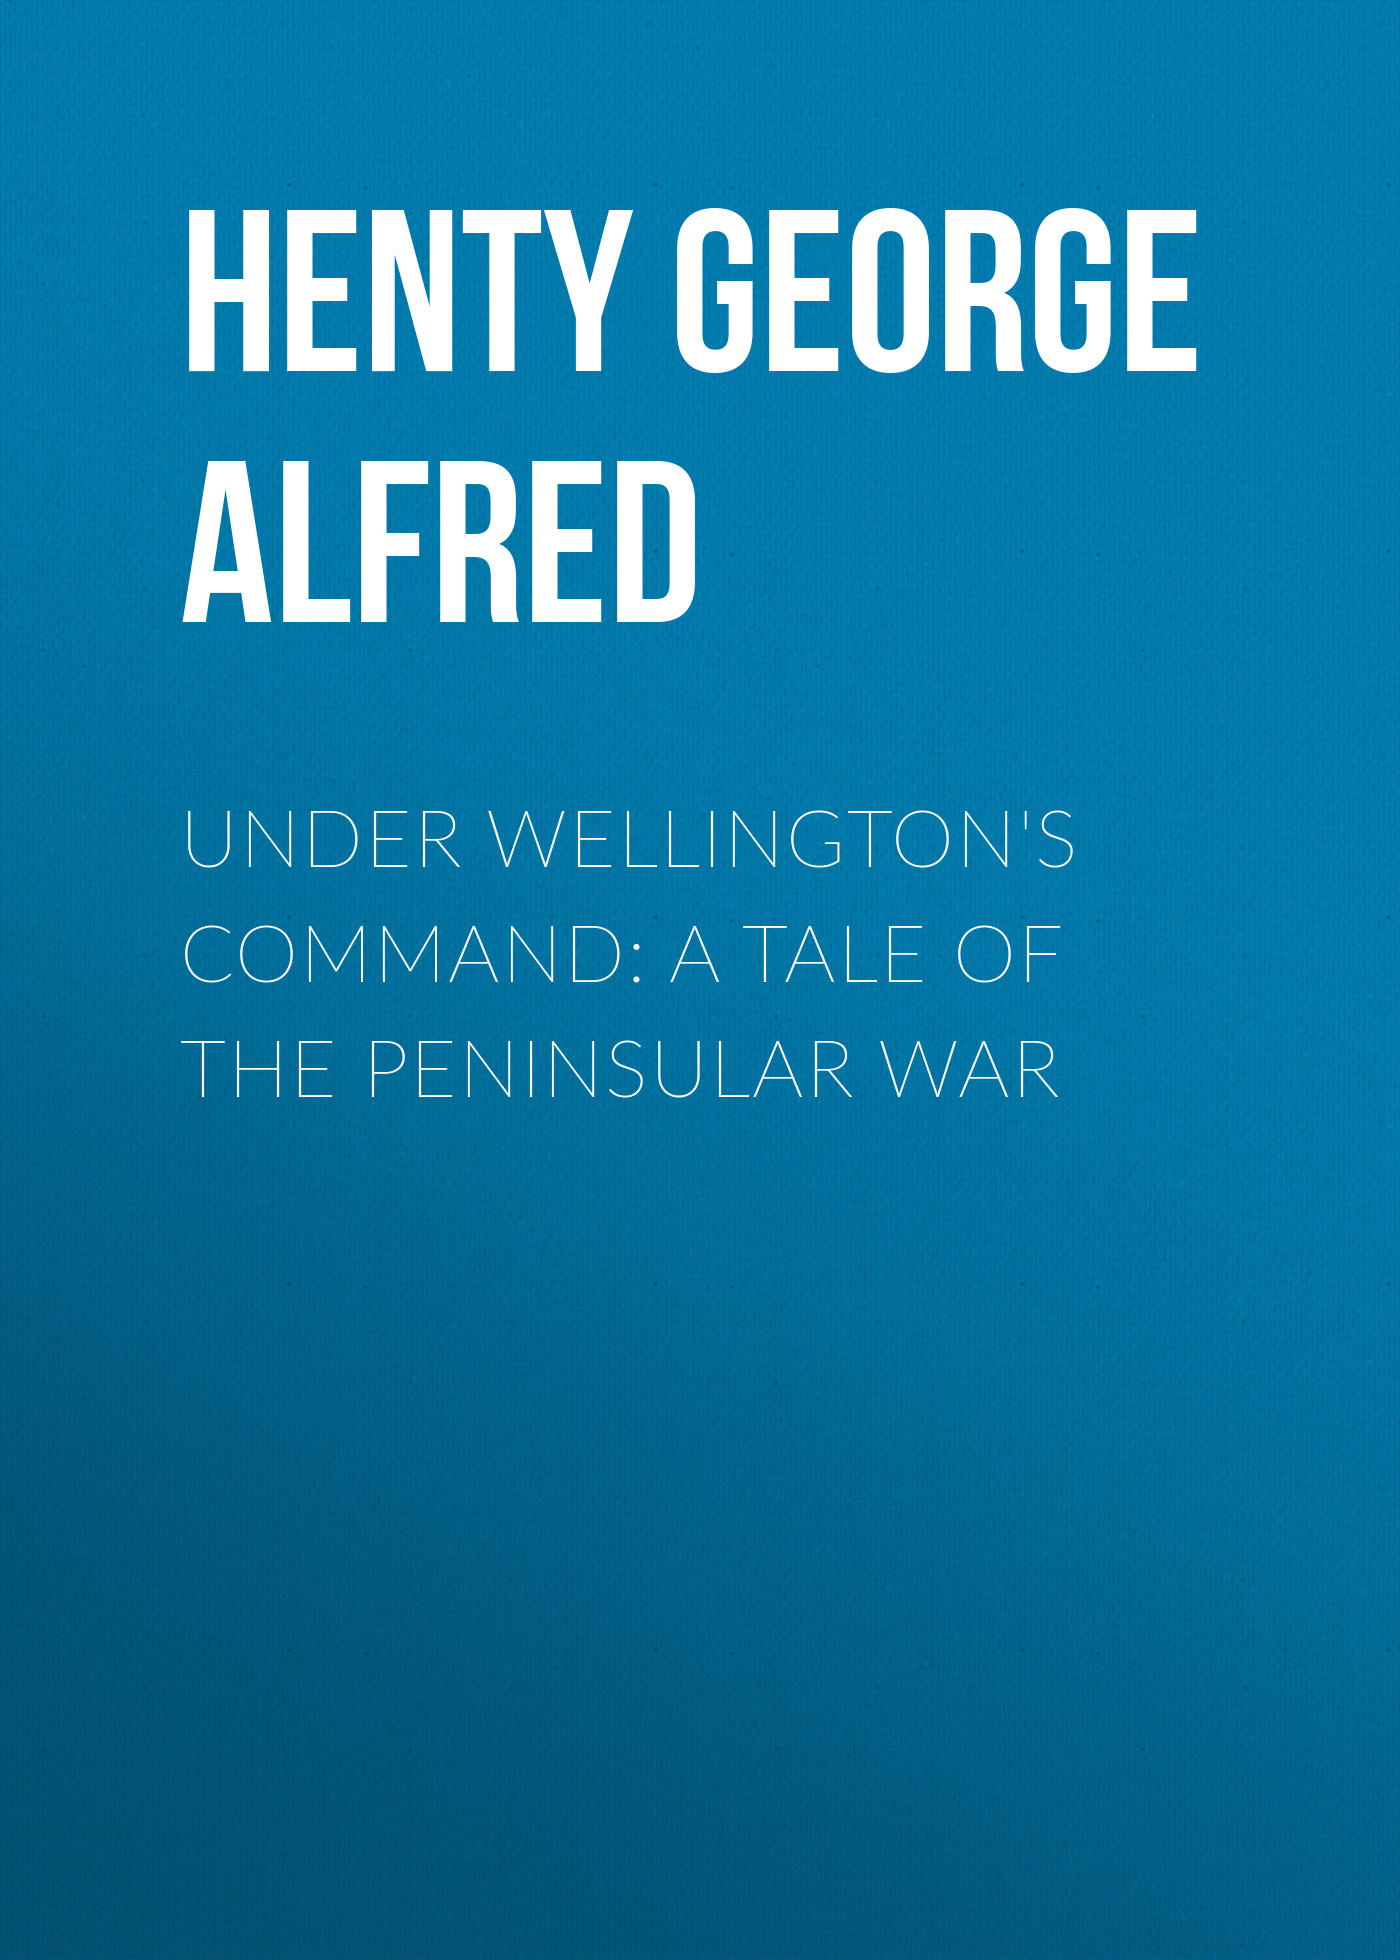 лучшая цена Henty George Alfred Under Wellington's Command: A Tale of the Peninsular War